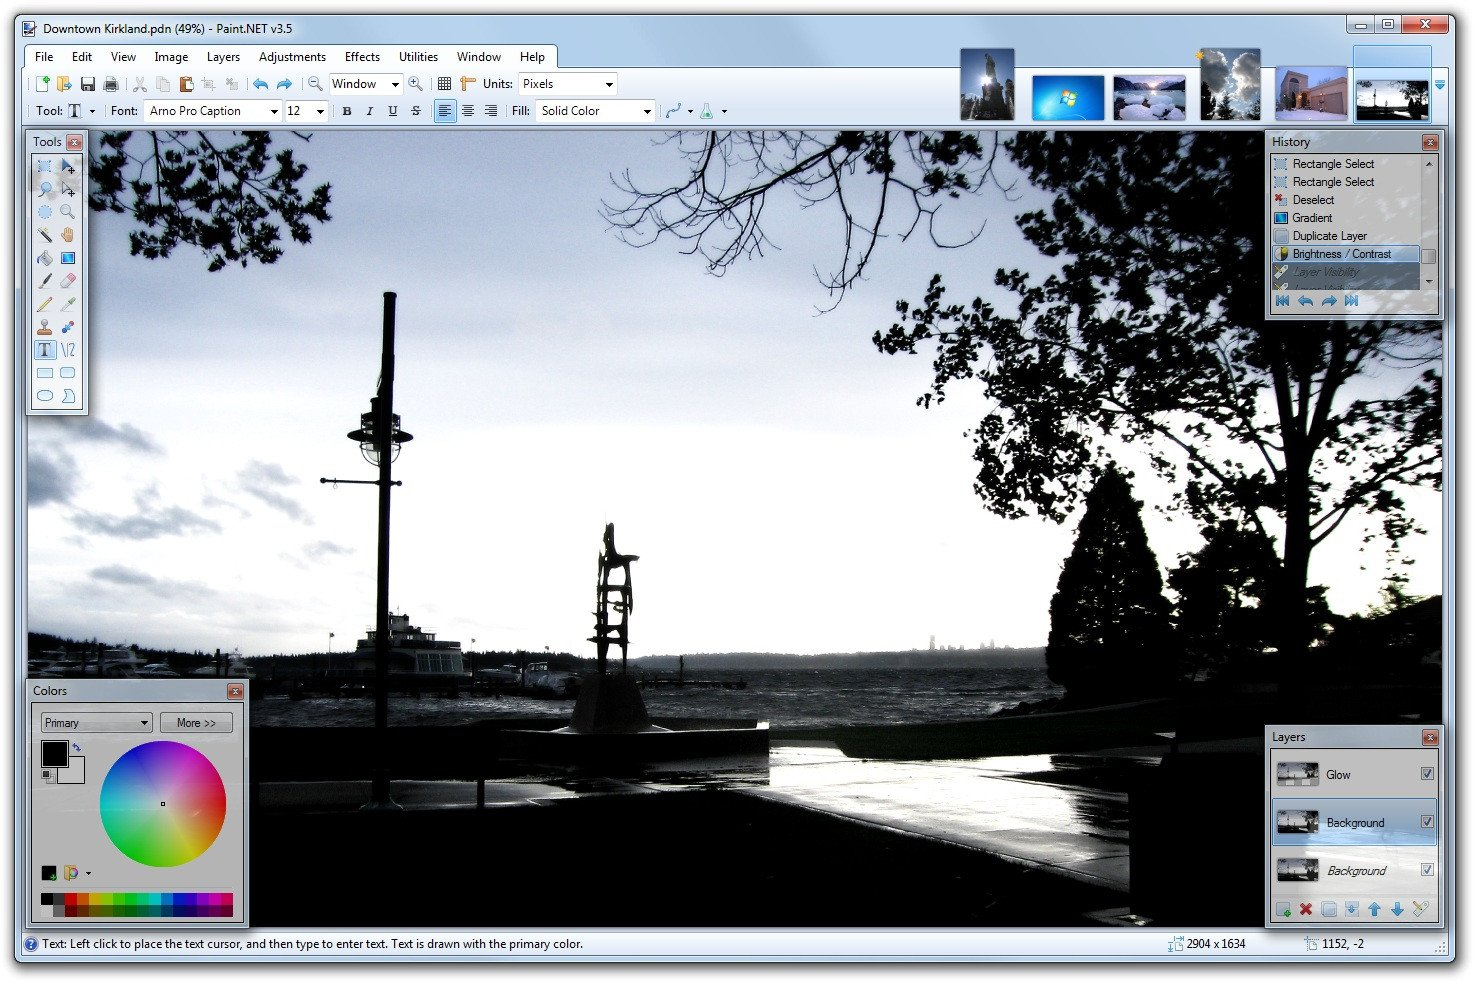 Paint.net Screenshot with loaded images